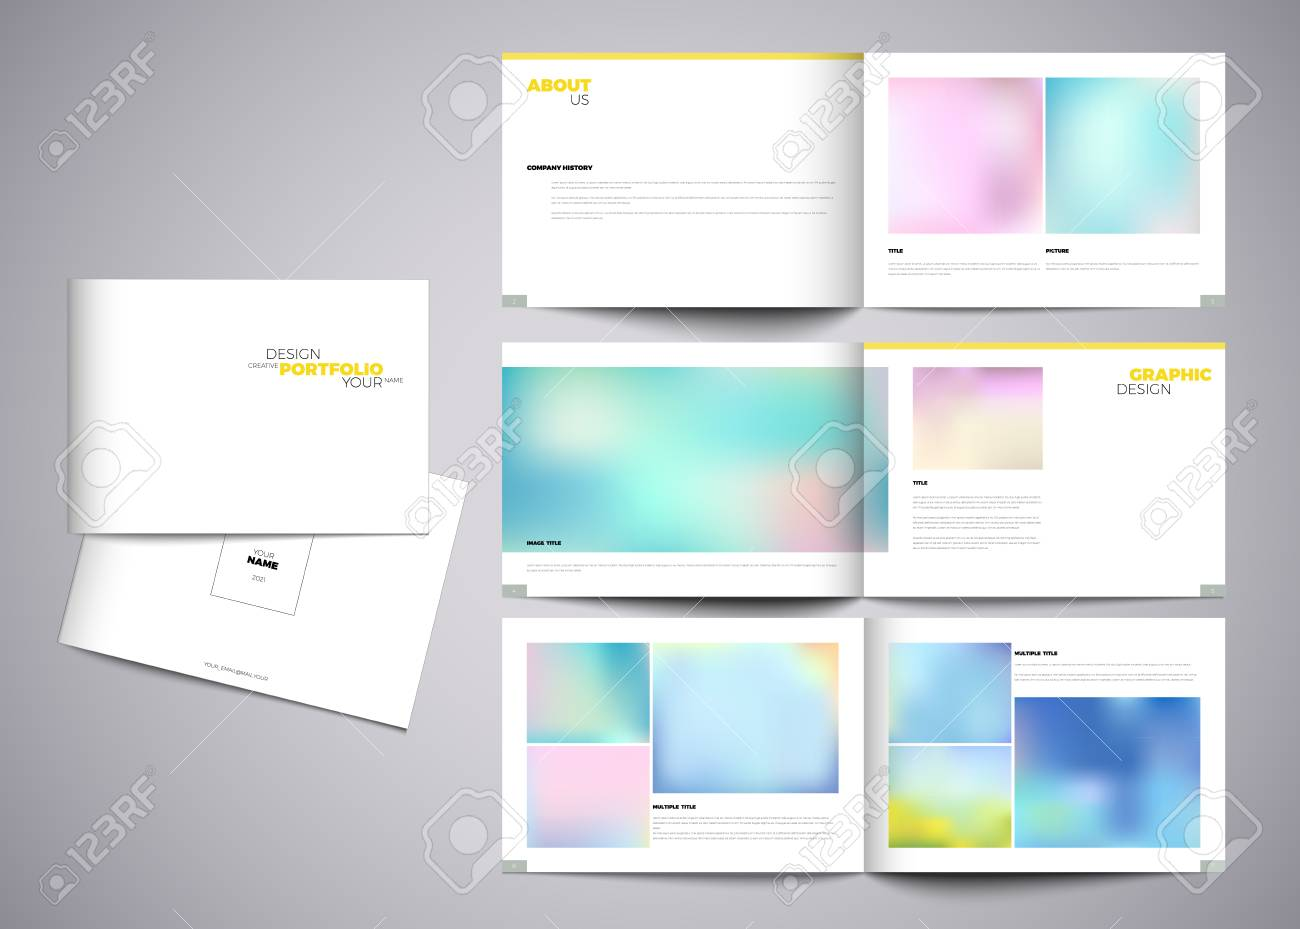 Graphic Design Studio Portfolio Template White Creative Pages Royalty Free Cliparts Vectors And Stock Illustration Image 61035425